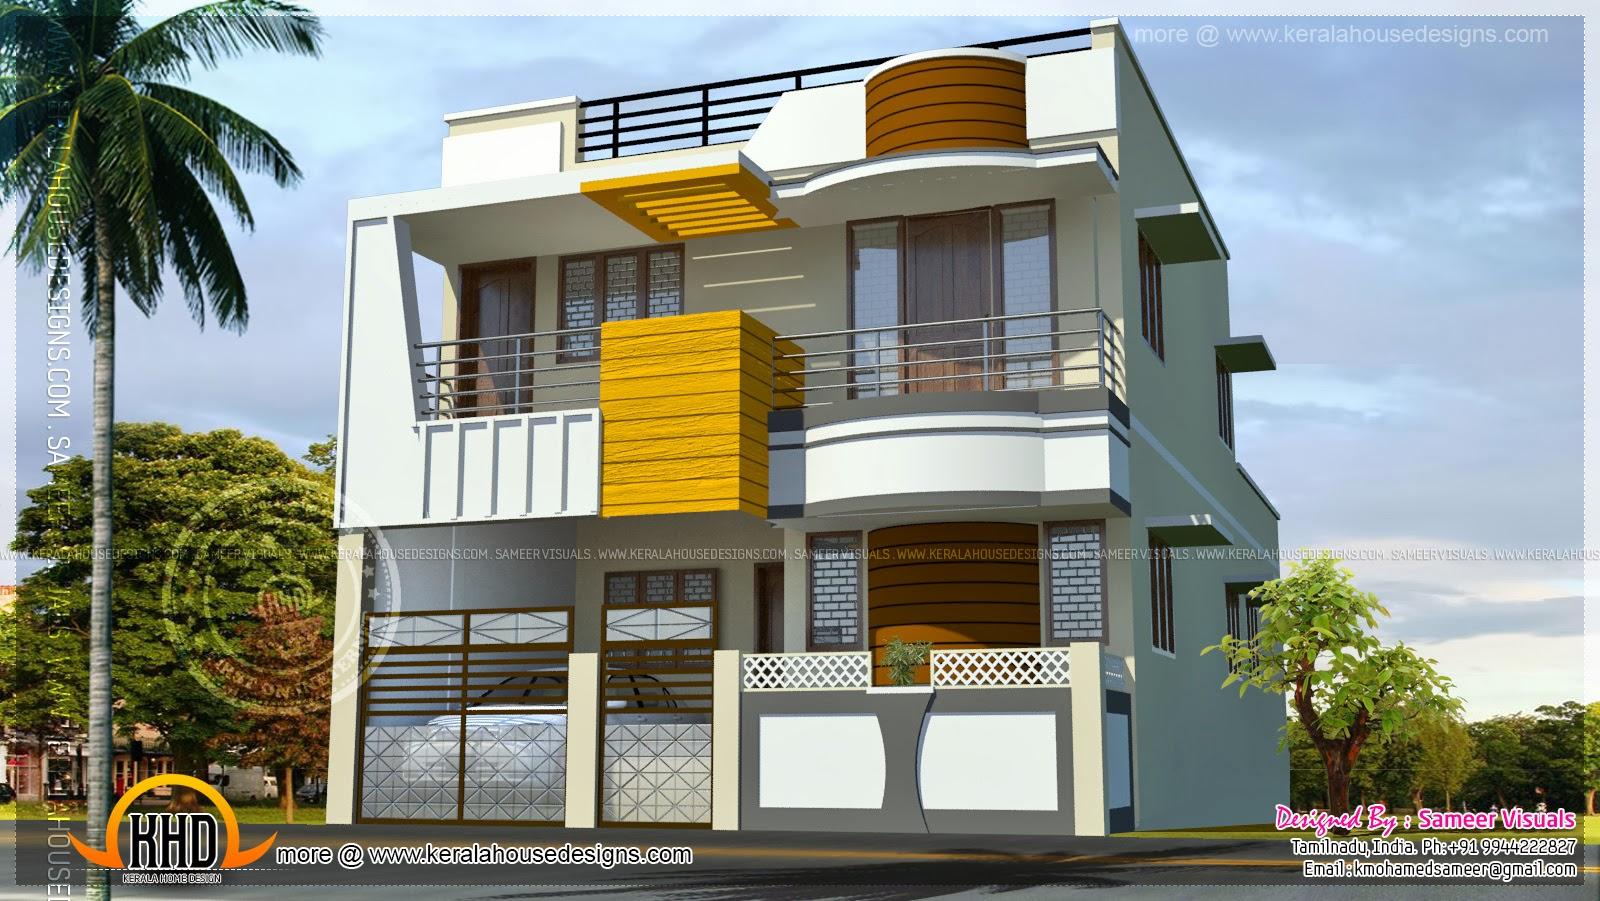 Double storied modern south indian home kerala home Indian small house design pictures